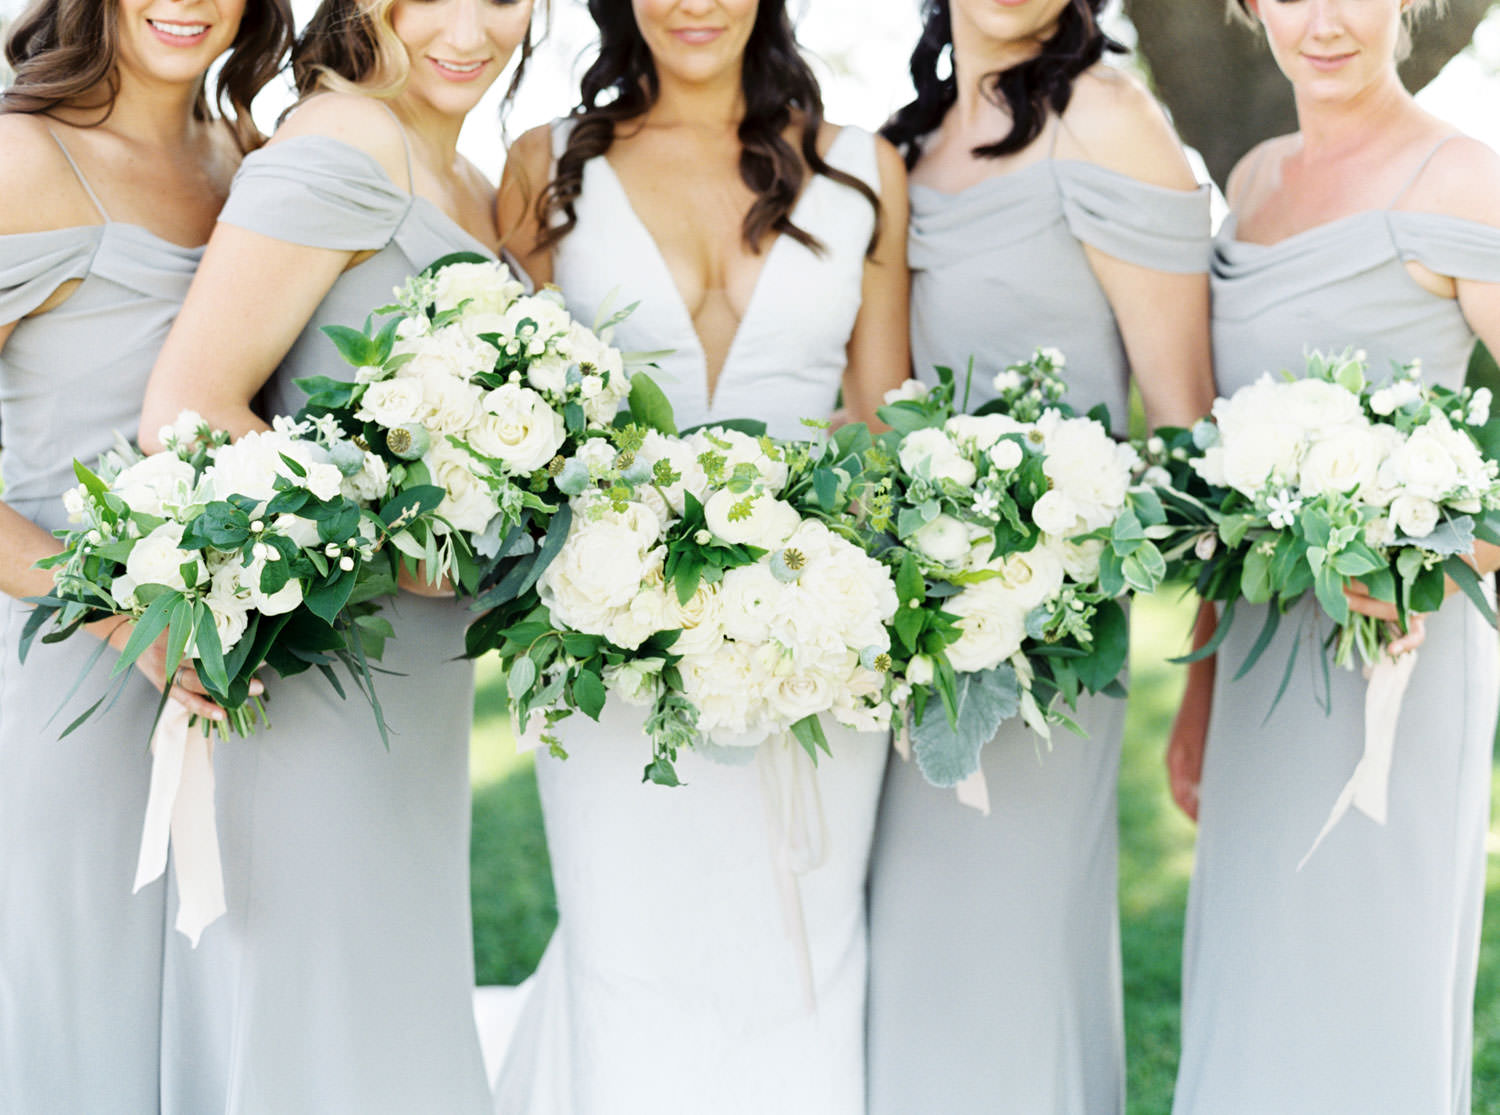 Bridesmaids in grey lavender gowns with bride portrait with white and green bouquet with trailing ribbons captured on medium format film, Cavin Elizabeth Photography